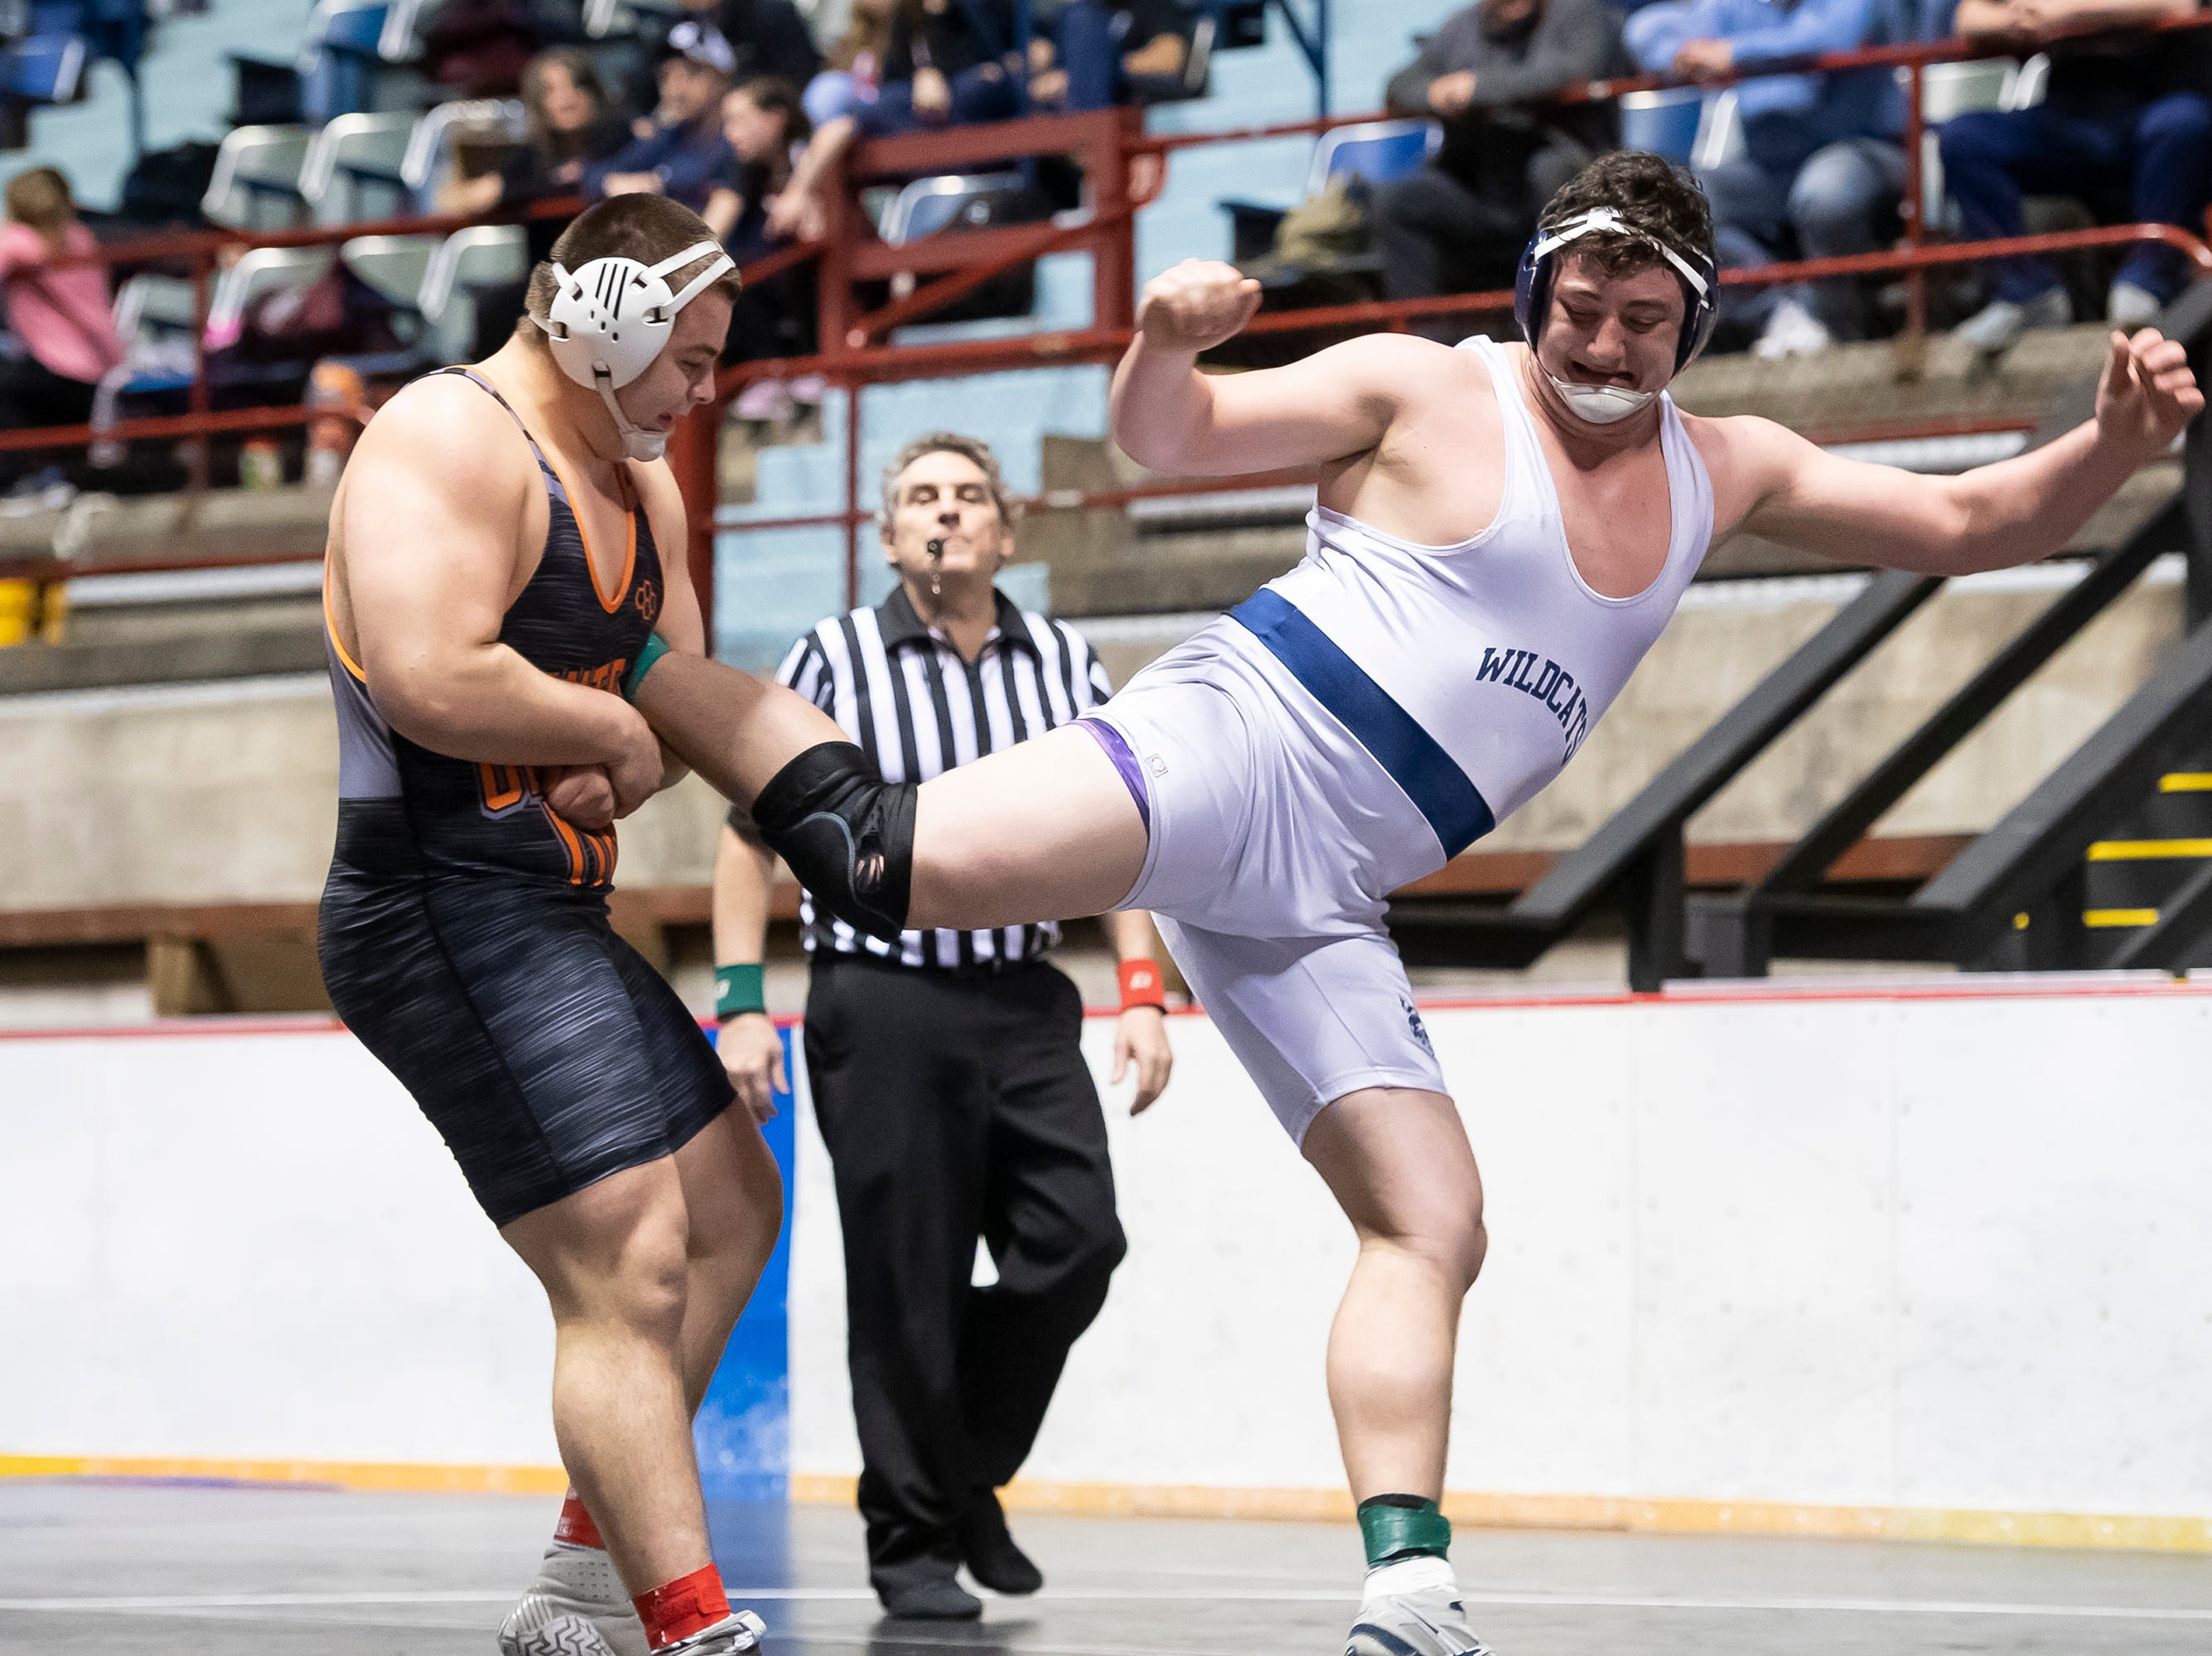 Central York's Michael Wolfgram controls Dallastown's Raymond Christas during a 285-pound championship bout at the District 3 wrestling championships at Hersheypark Arena Saturday, February 23, 2019. Wolfgram won by tech fall 24-9 5:08.